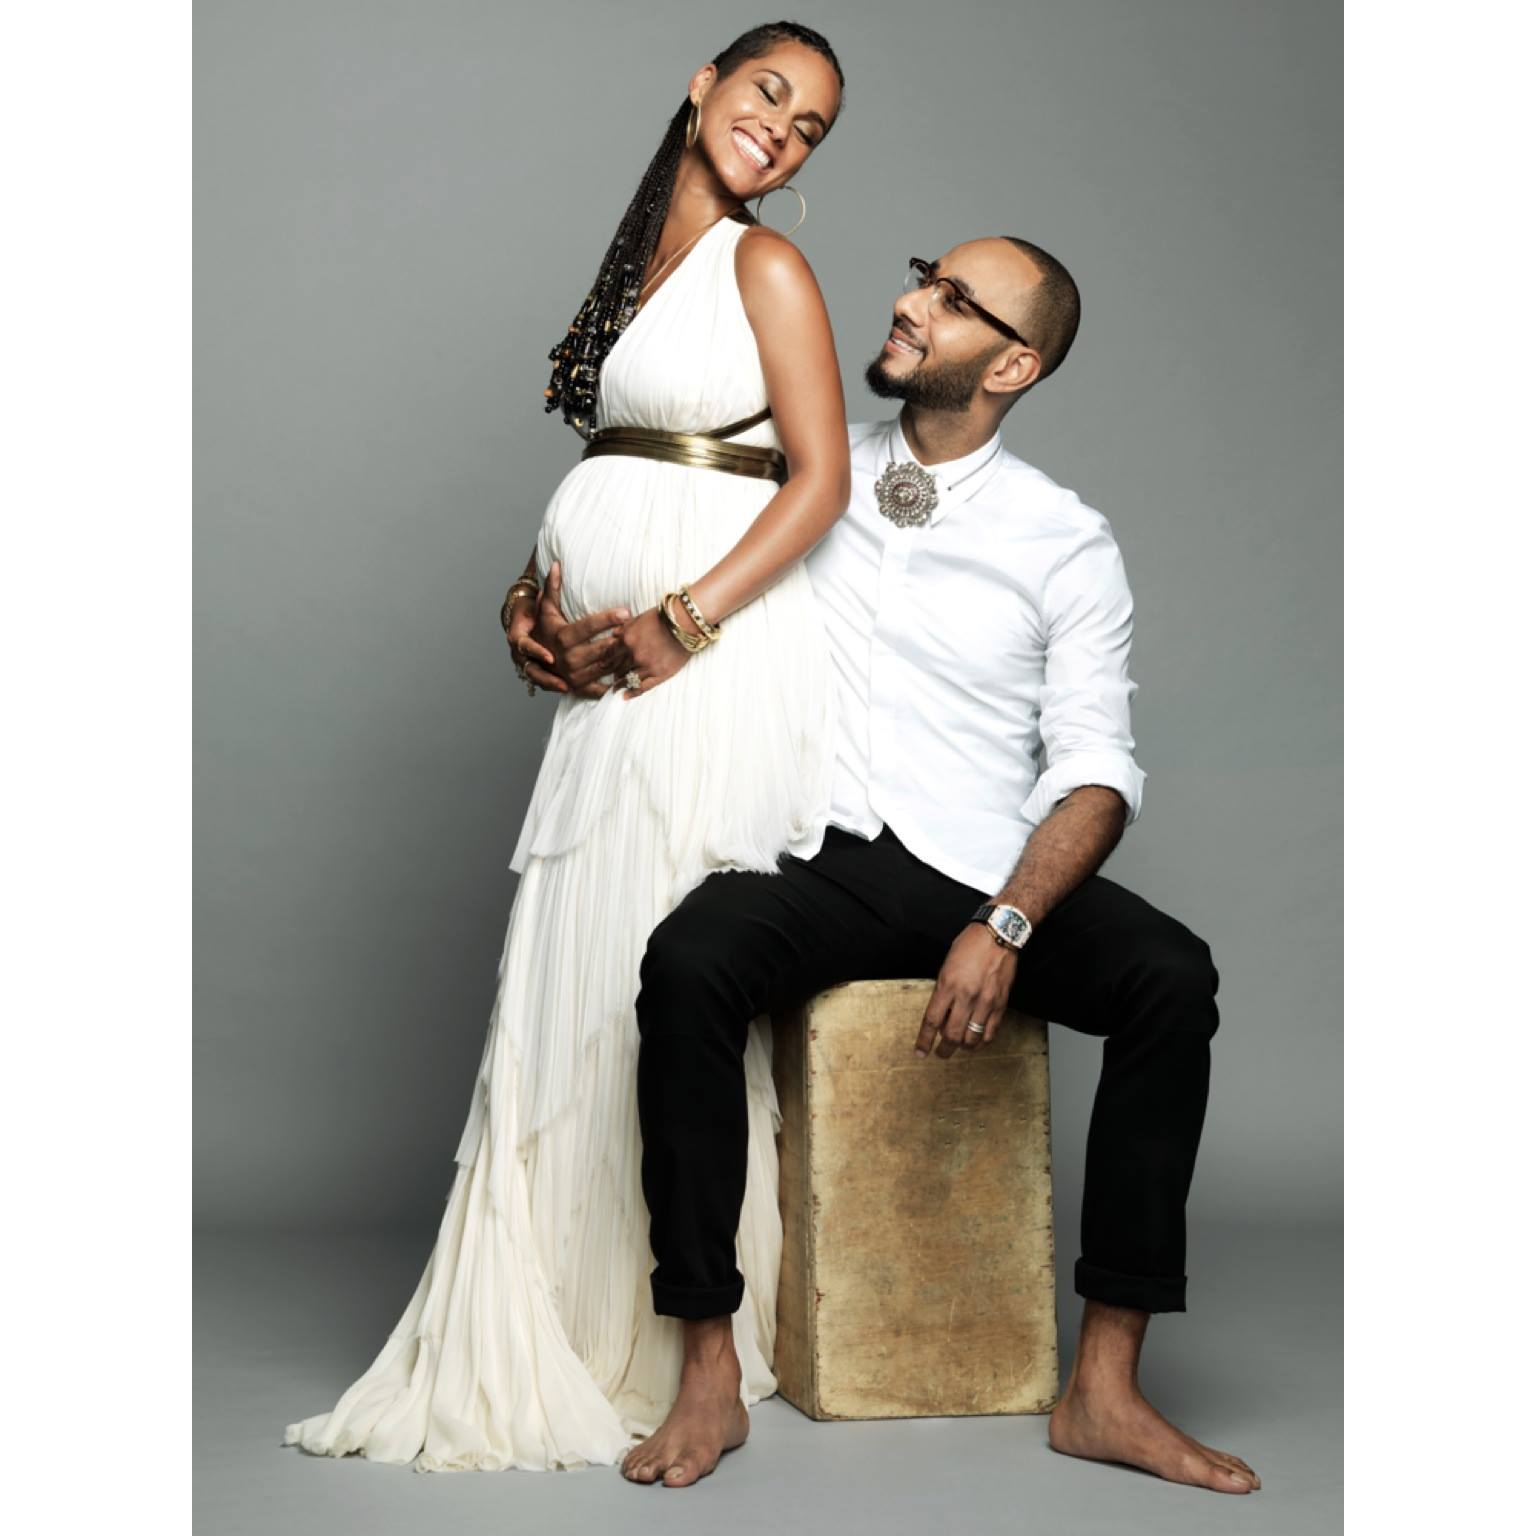 Alicia Keys announces new pregnancy